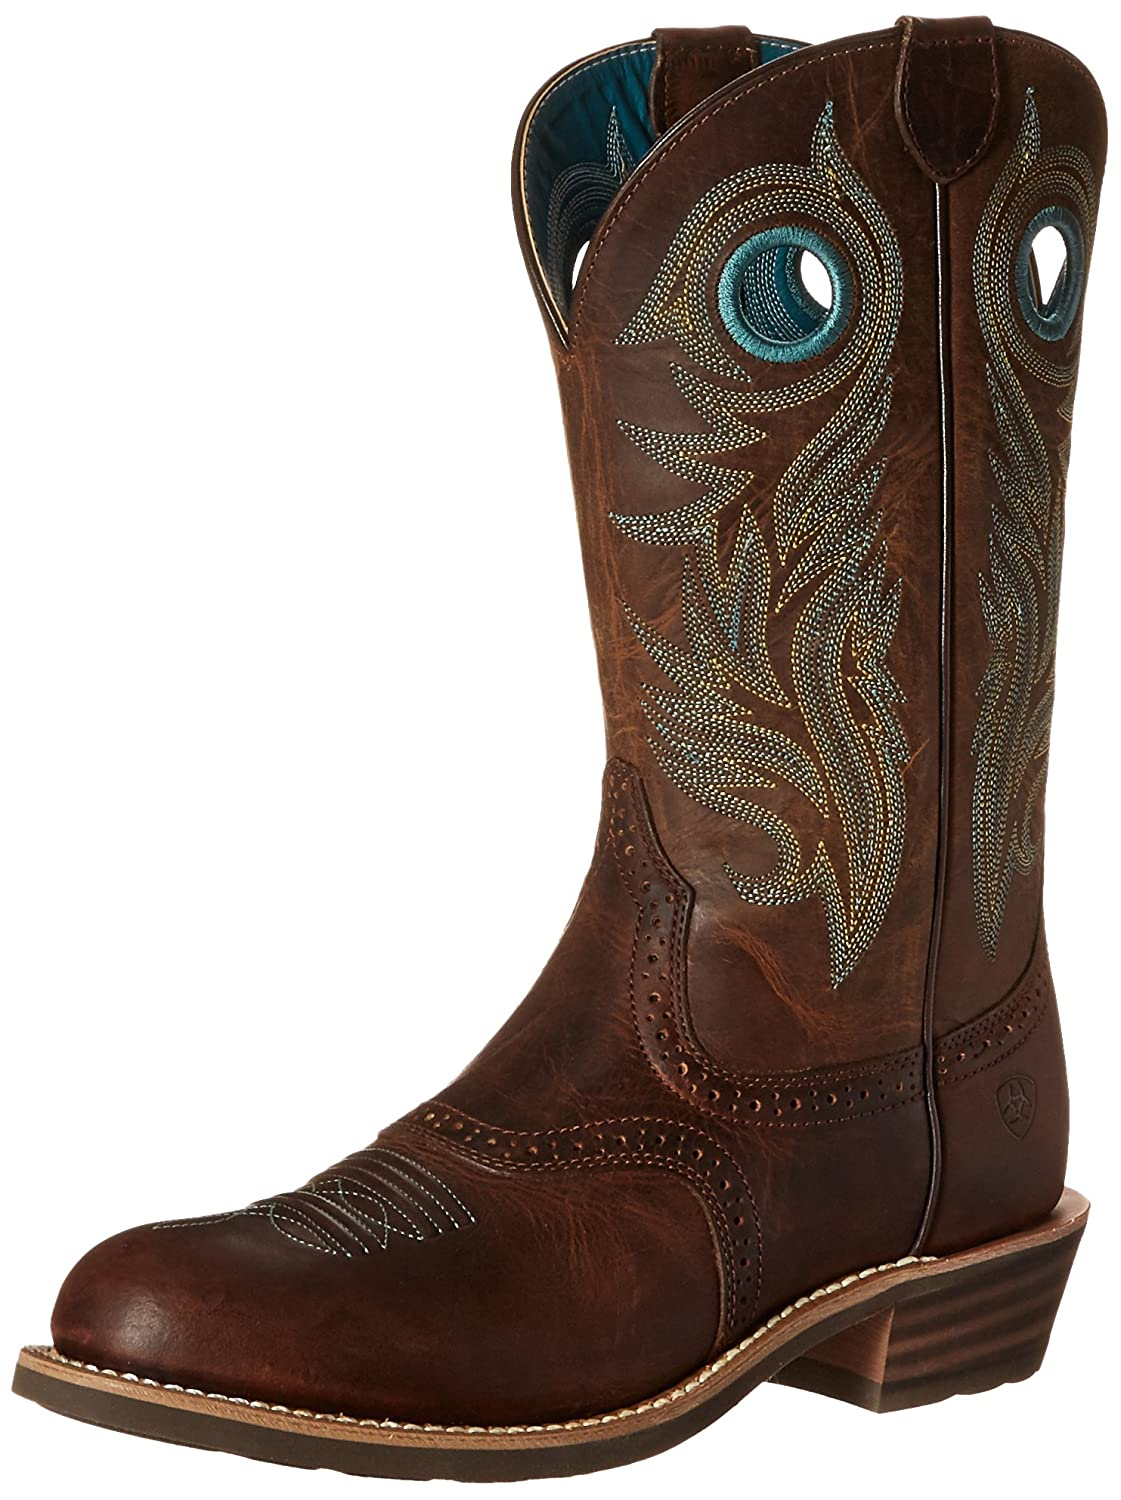 [Ariat] レディース B00NTNCK6W レディース 7 Brown B(M) US|Bar Top Top Brown Bar Top Brown 7 B(M) US, チェリーホップ:80268e58 --- krianta.ru